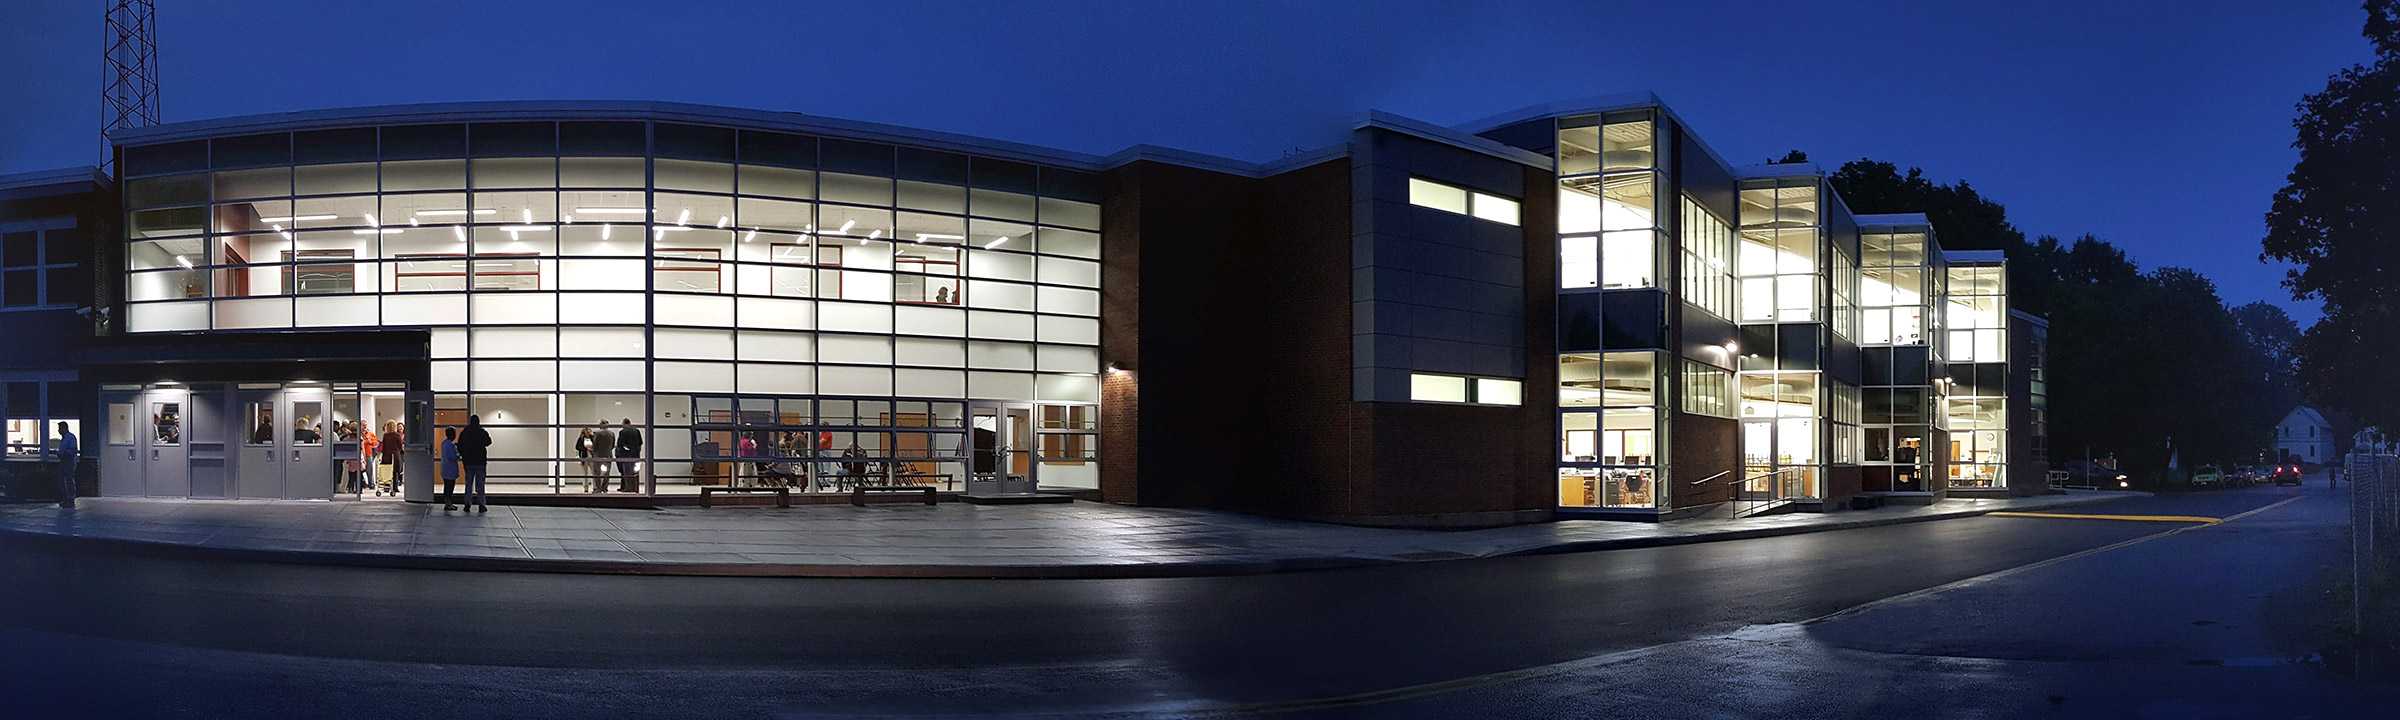 Panoramic photo of Burnt Hills-Ballston Lake High School building in the evening with brightly-lit windows and people